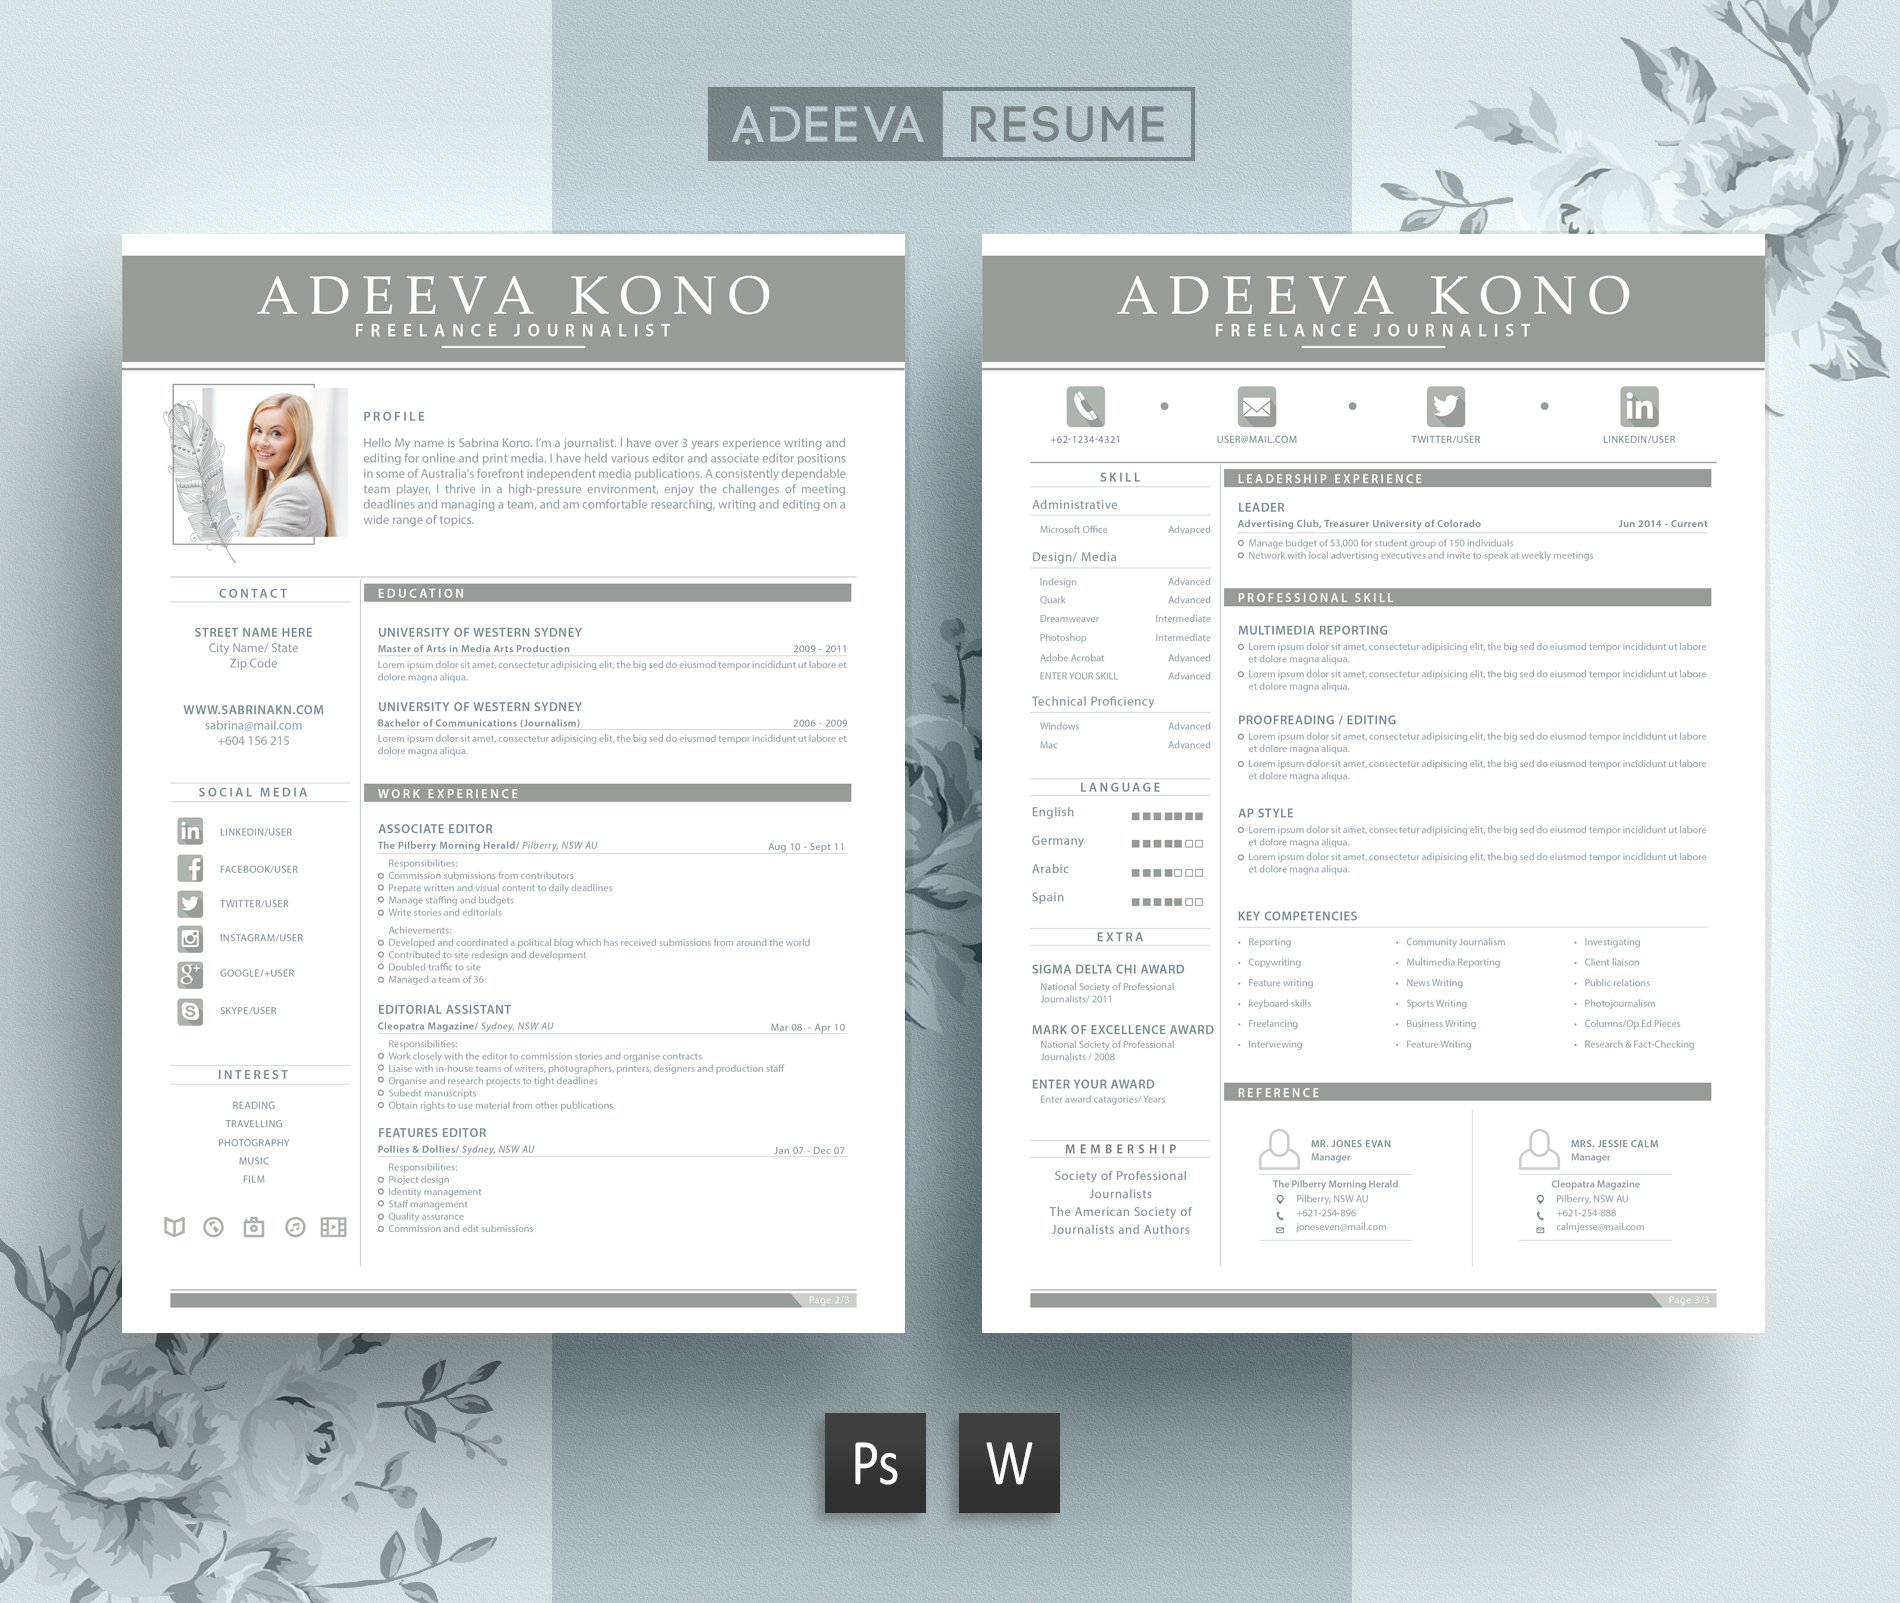 Professional Resume Templates Free: Professional Resume Template Kono